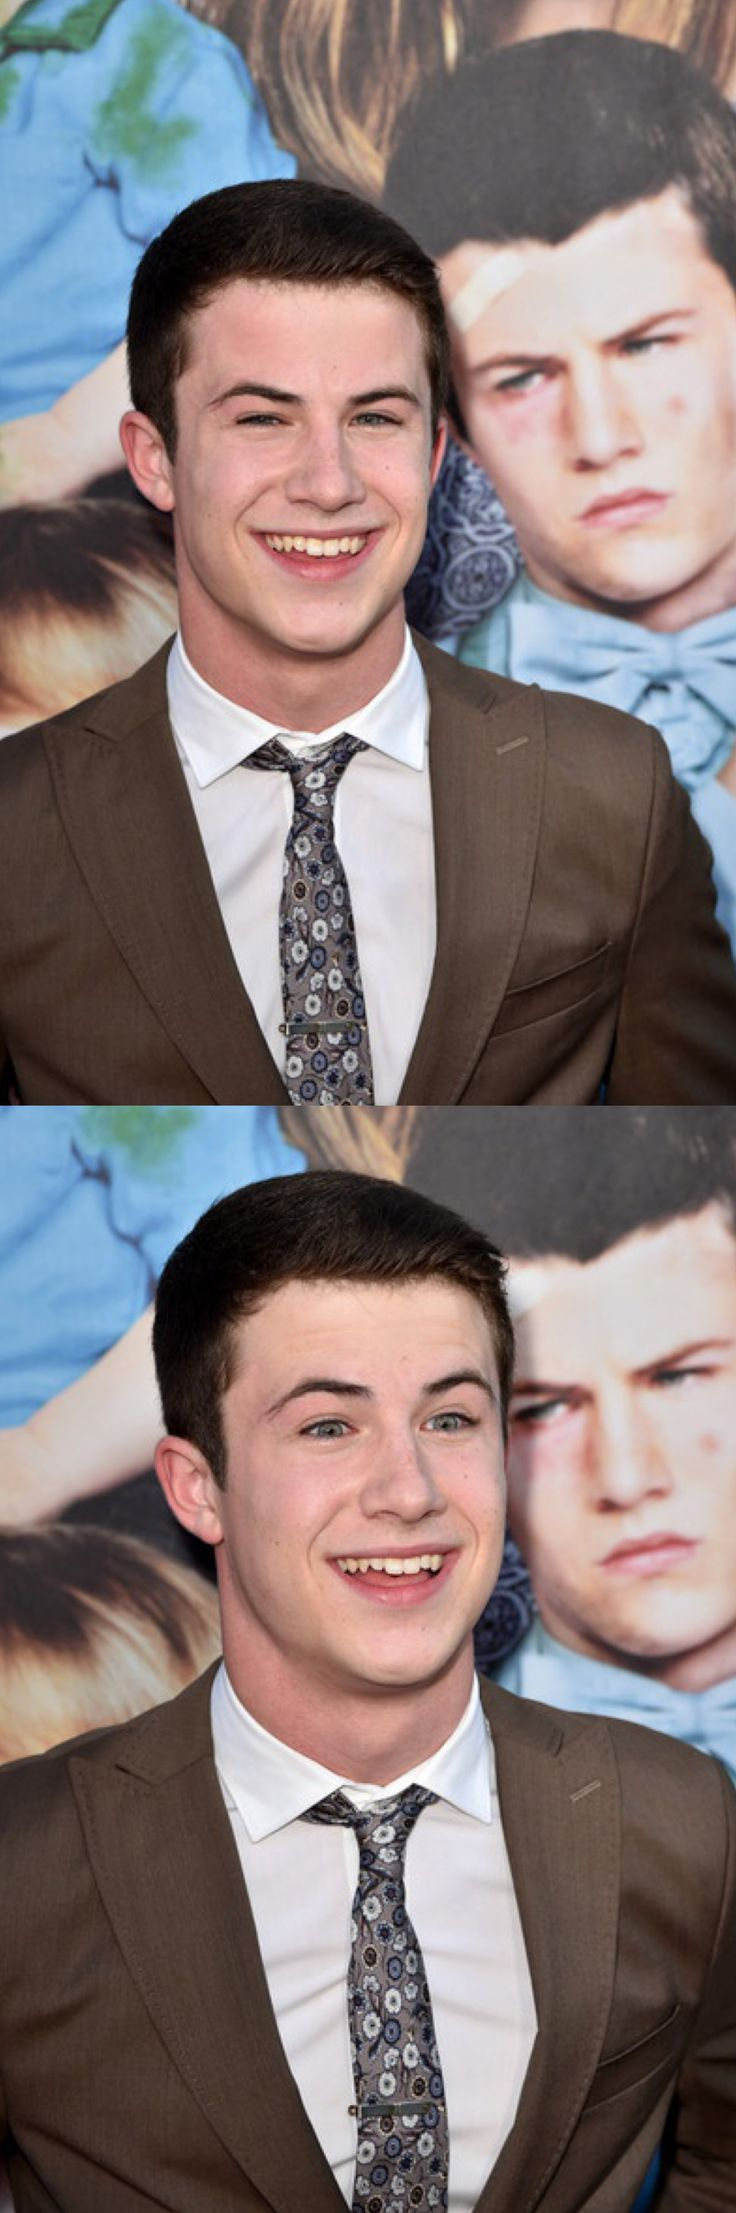 Dylan Minnette at The World Premiere of Disney's 'Alexander and the Terrible, Horrible, No Good, Very Bad Day' at the El Capitan Theatre on October 6, 2014 in Hollywood, California.